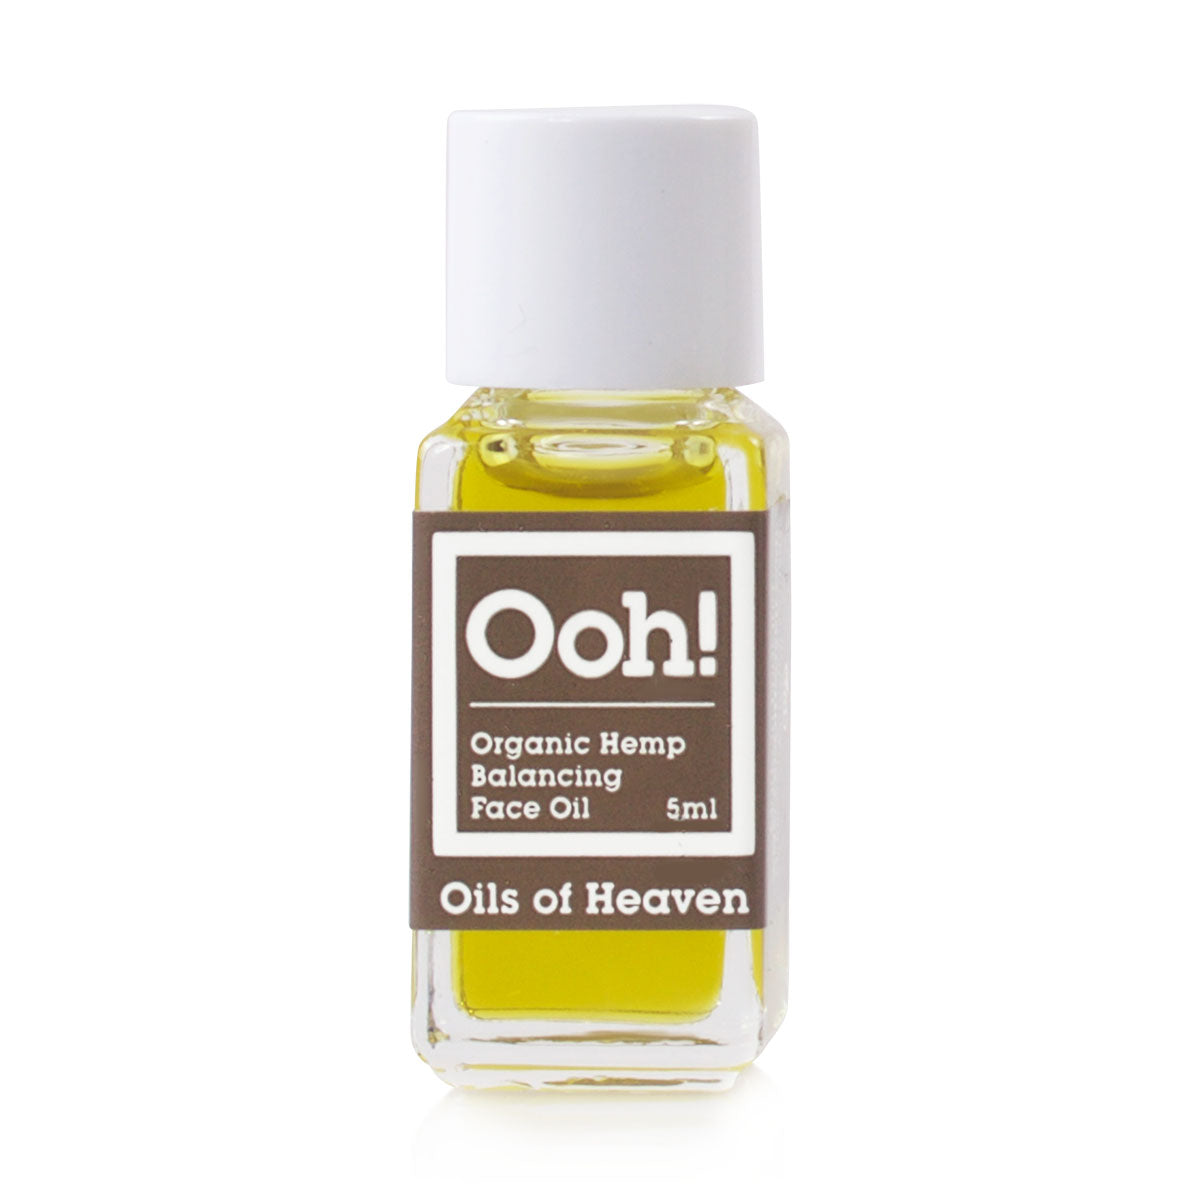 Organic Hemp Face Oil Sample 5ml